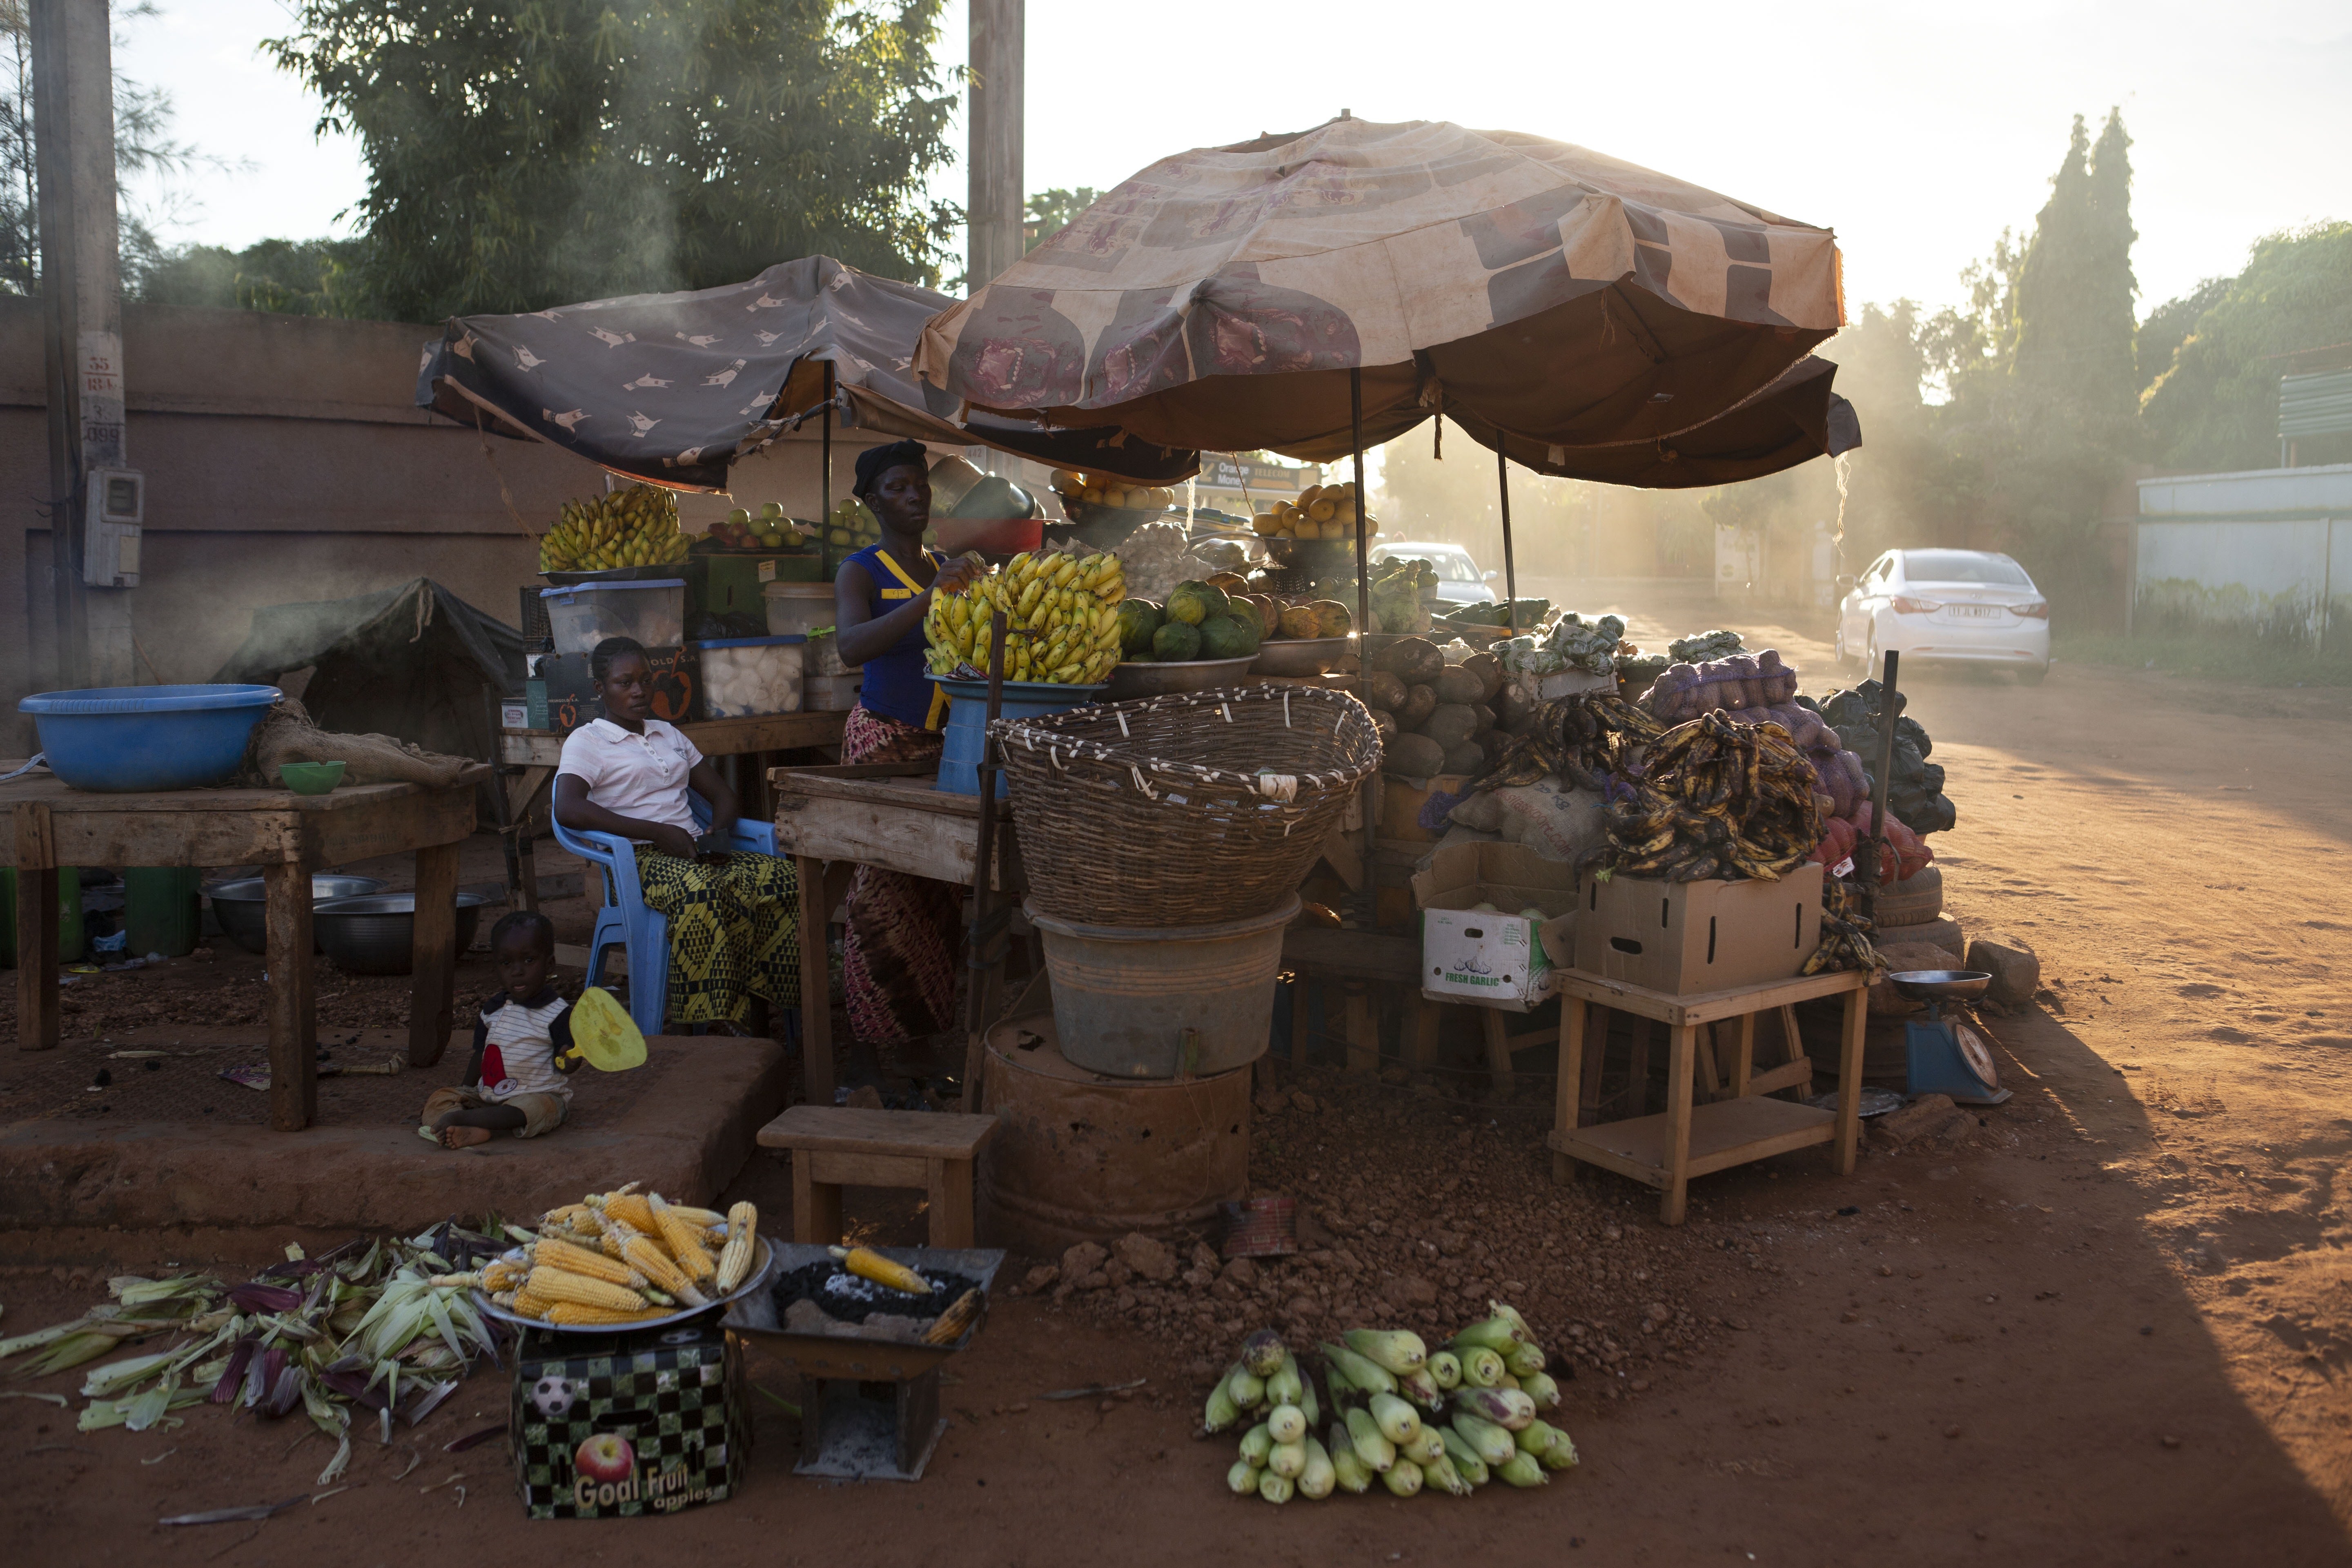 A vendor sells fruits and vegetables at dusk in the Ouaga 2000 neighborhood where former General Gilbert Diend?r? and the coup plotters of 2015 are on trial in Ouagadougouof Ouagadougou, Burkina Faso, August 28, 2018. Joe Penney for The Intercept